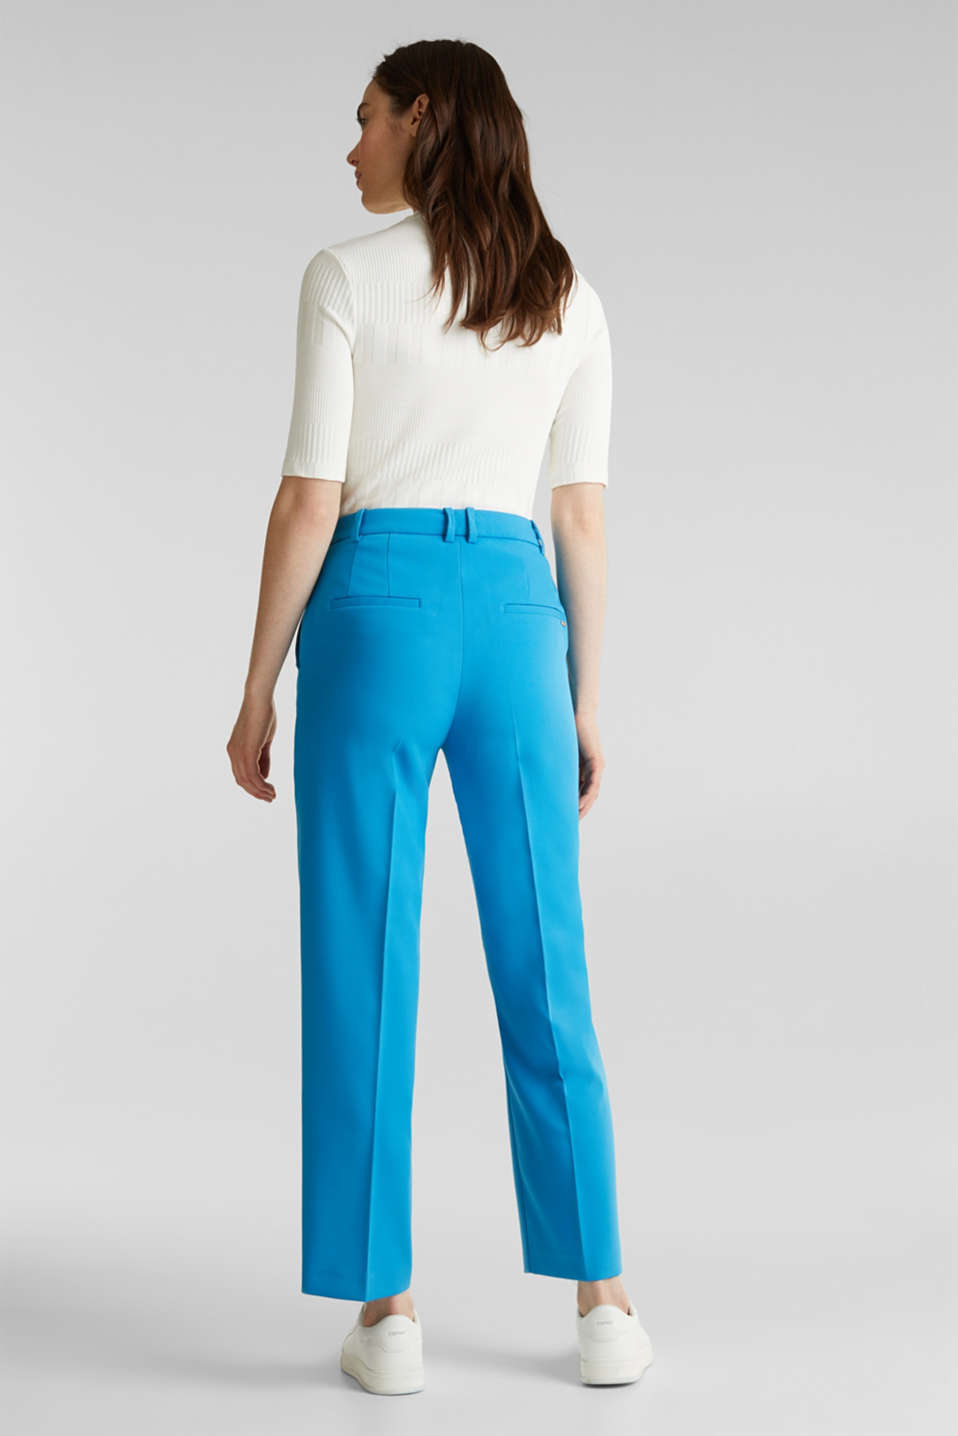 SHIMMER mix + match stretch trousers, DARK TURQUOISE, detail image number 3